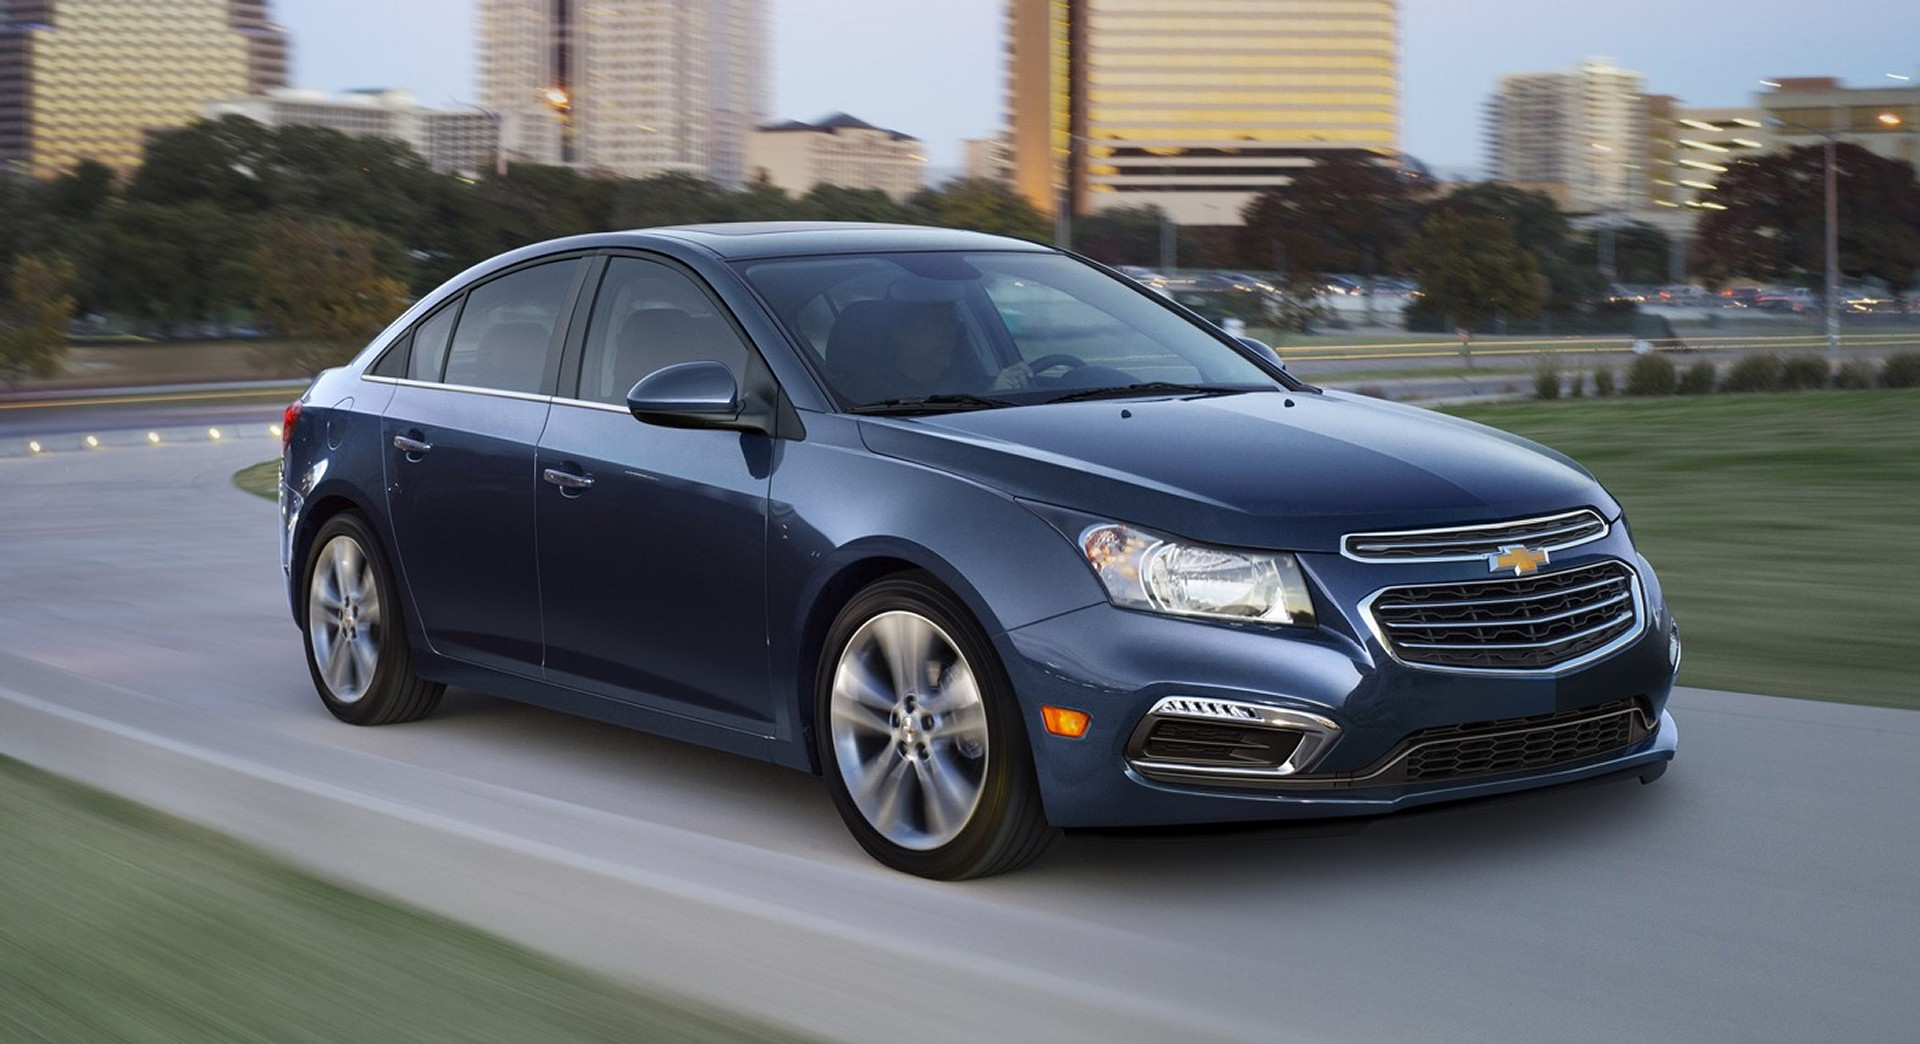 2015 Chevrolet Cruze (Chevy) Review, Ratings, Specs ...